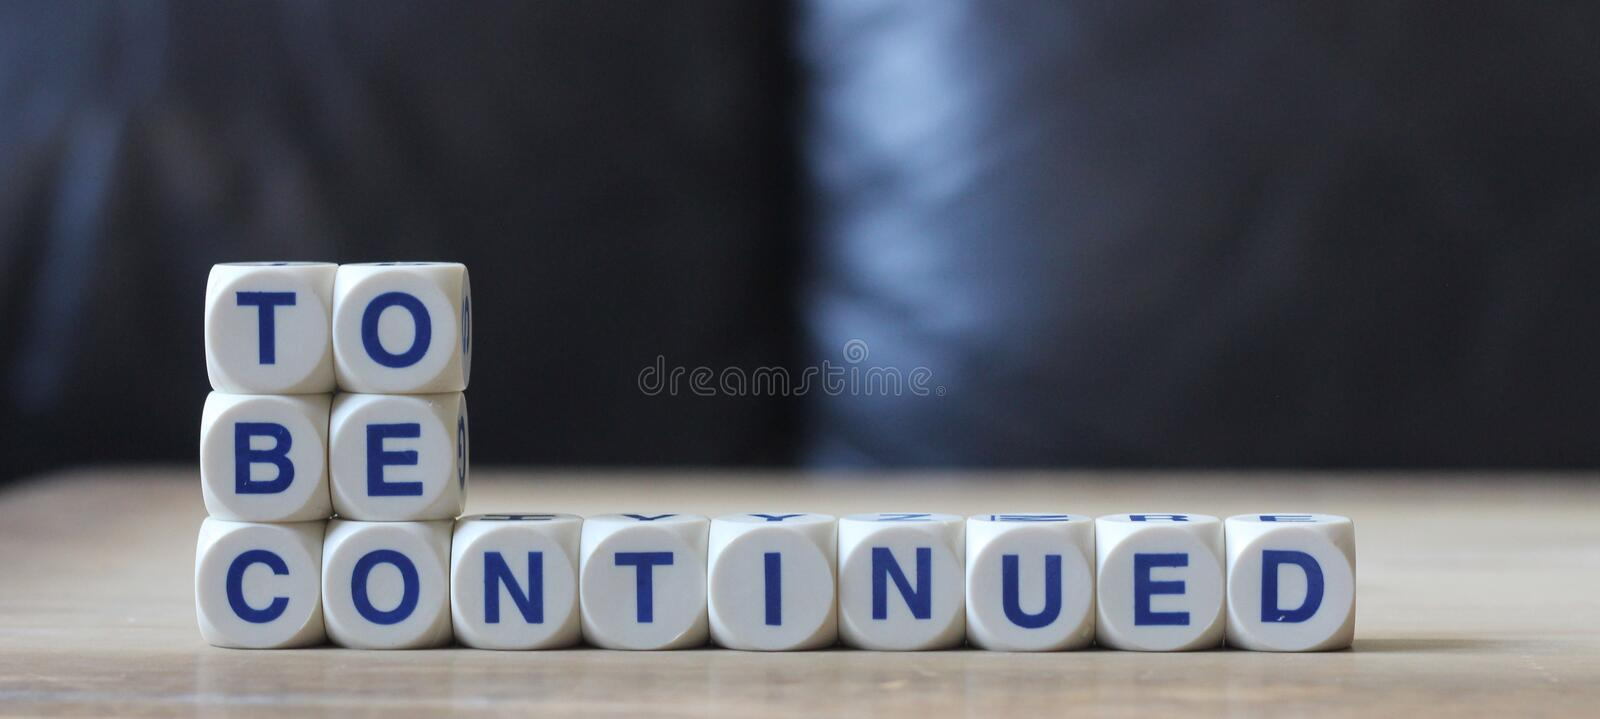 To be continued. Letters cube wordings on wood table stock image